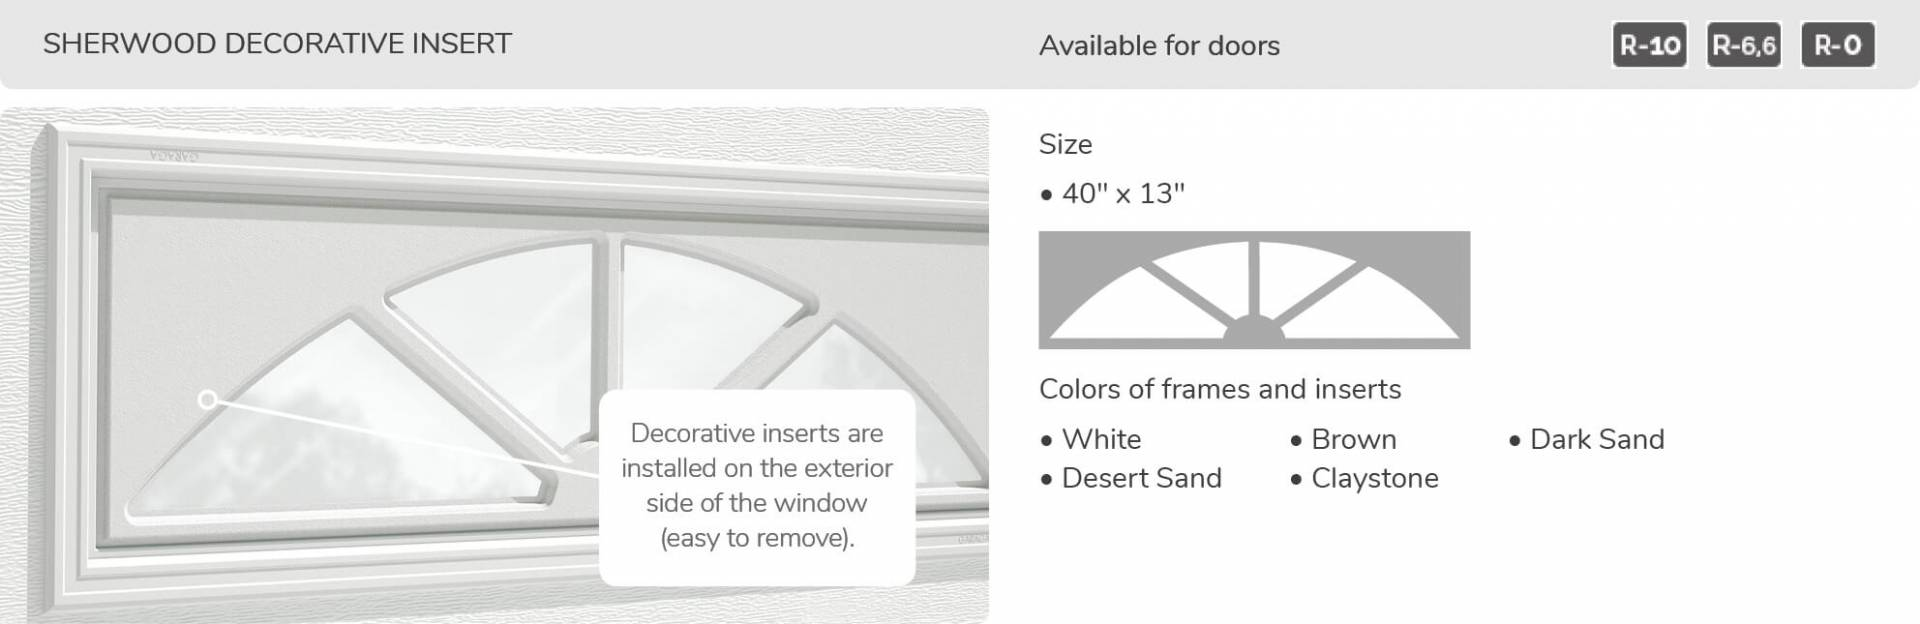 Sherwood Decorative Insert, 40' x 13', available for doors R-10, R-6.6, R-0